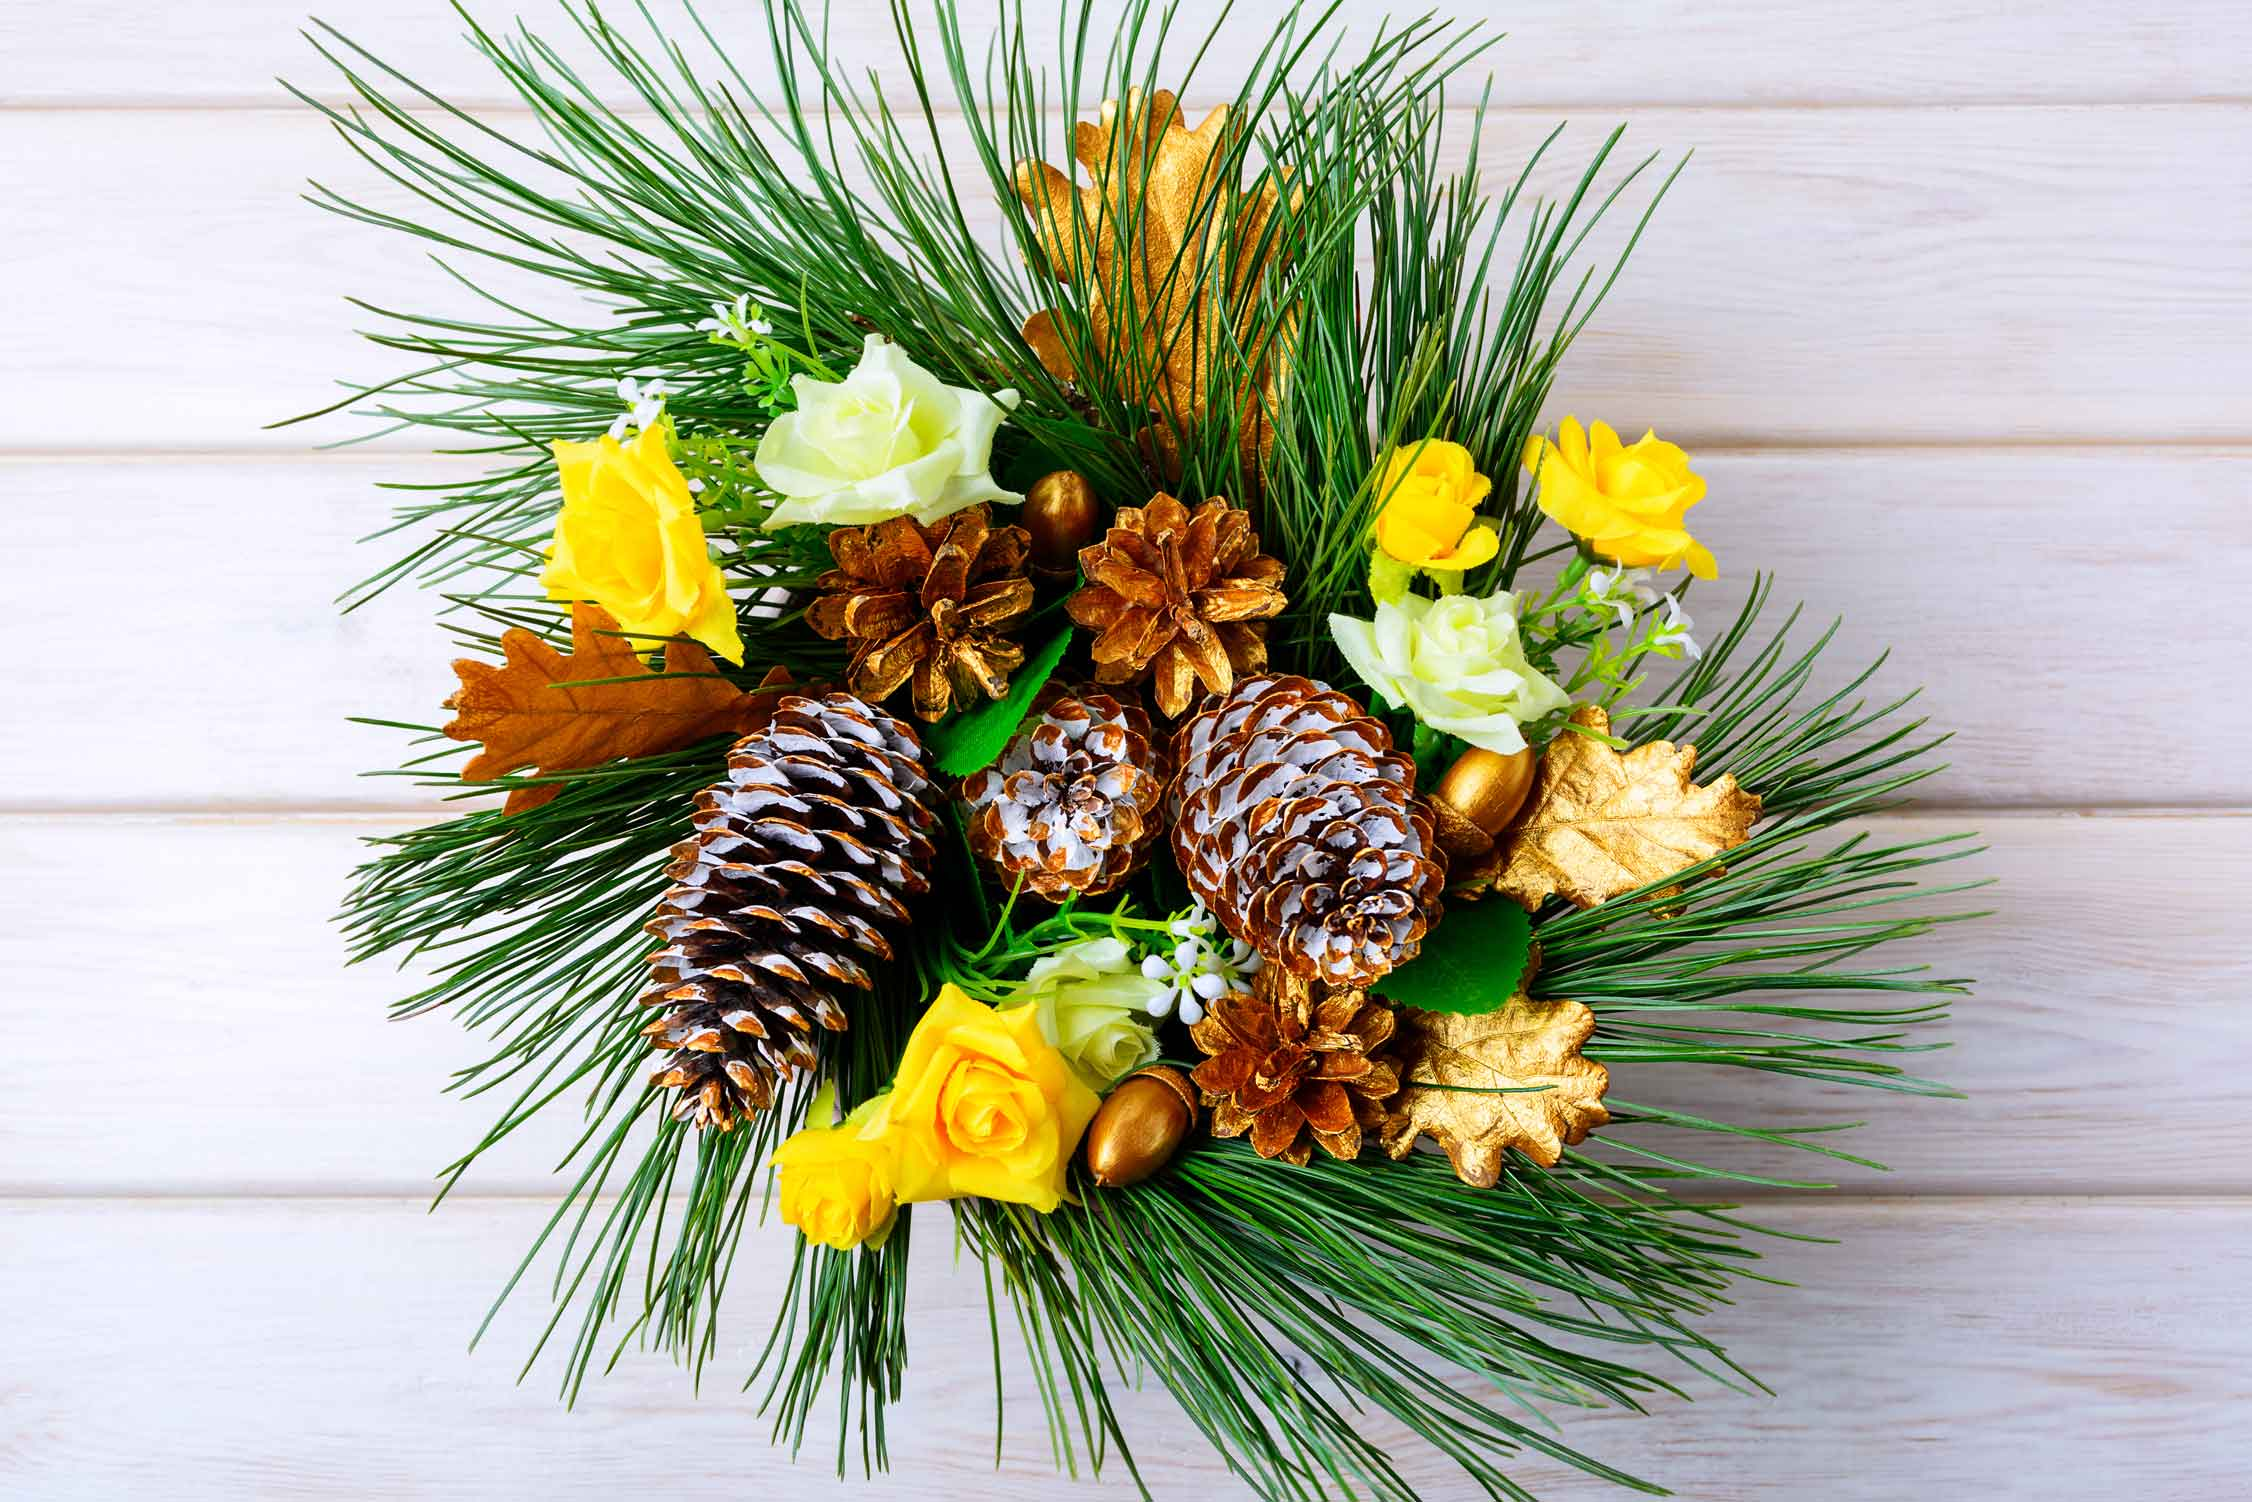 Christmas table centerpiece or door wreath with golden cones